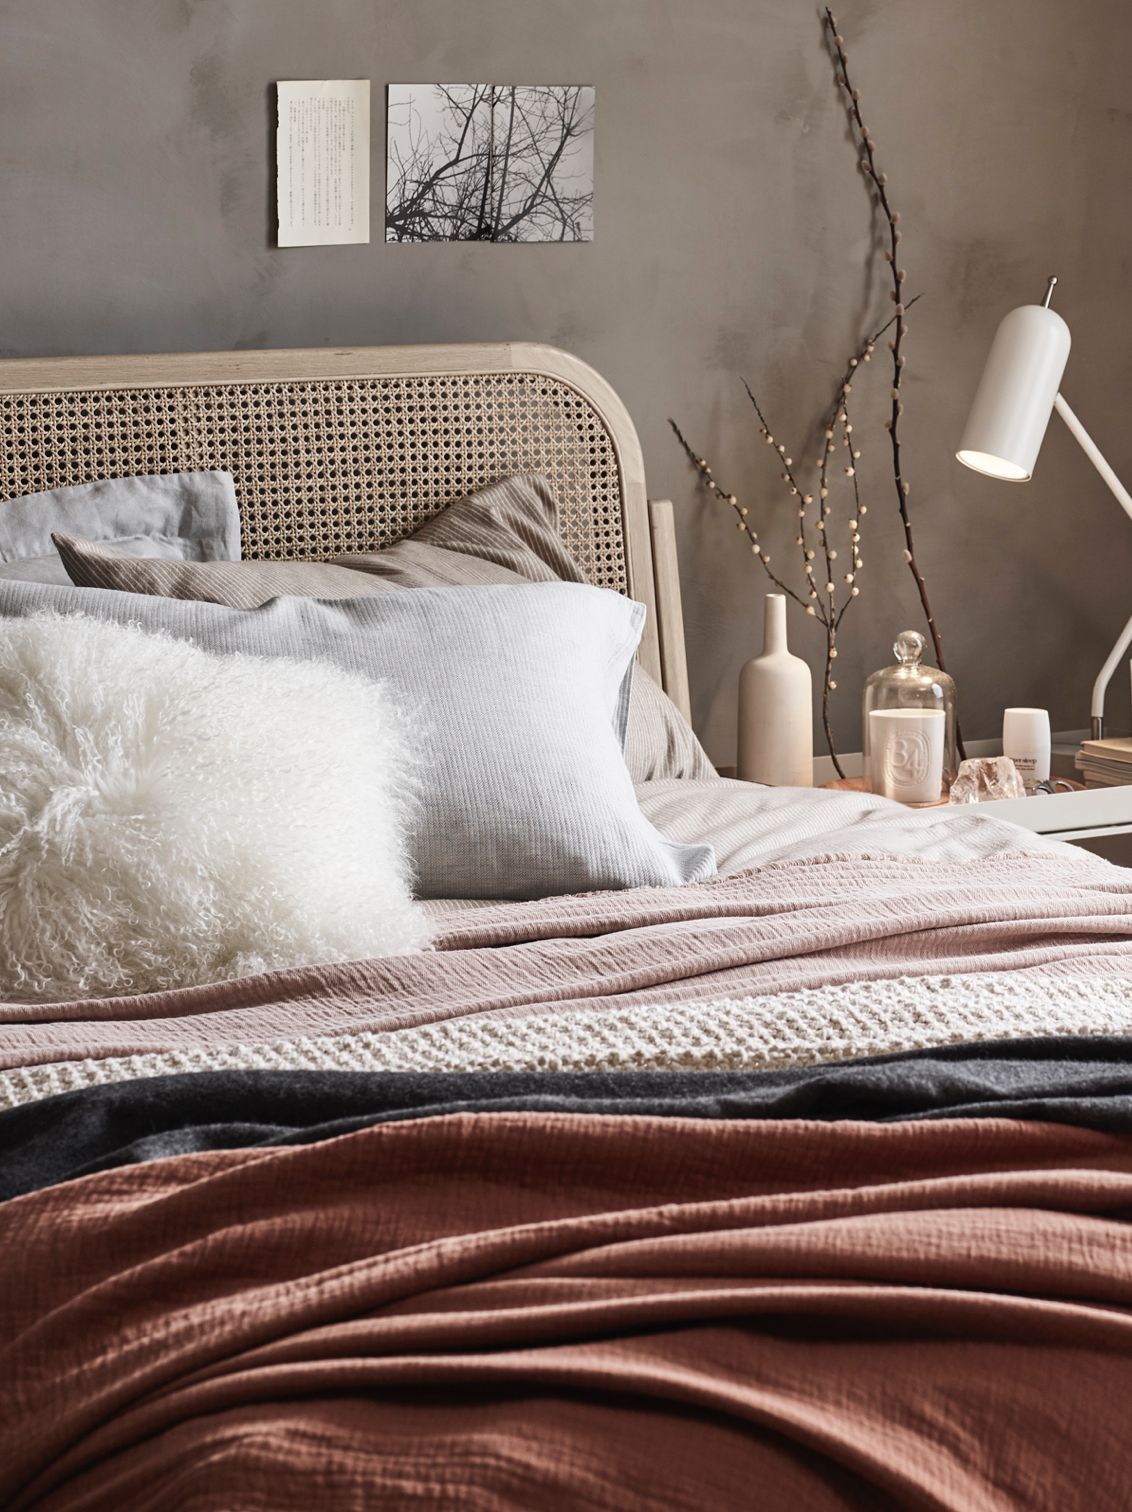 Shop New-In Bedding